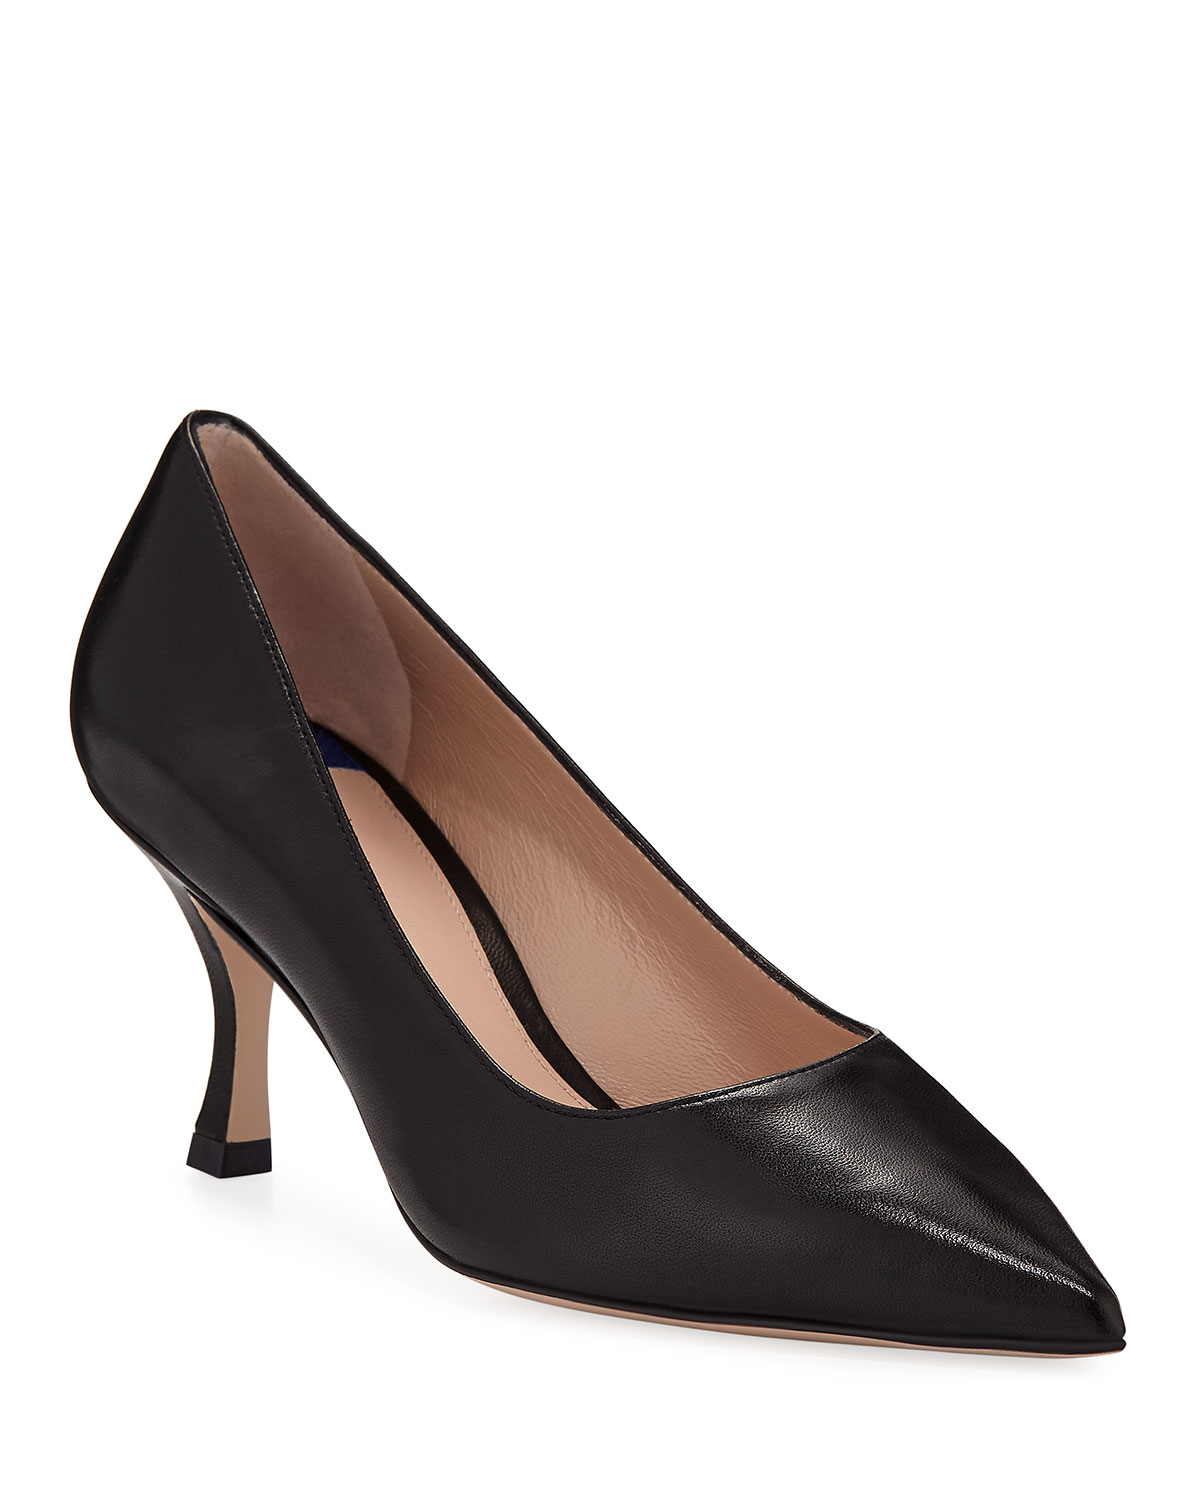 Tippi 70 Pointy Toe Pump, Nero